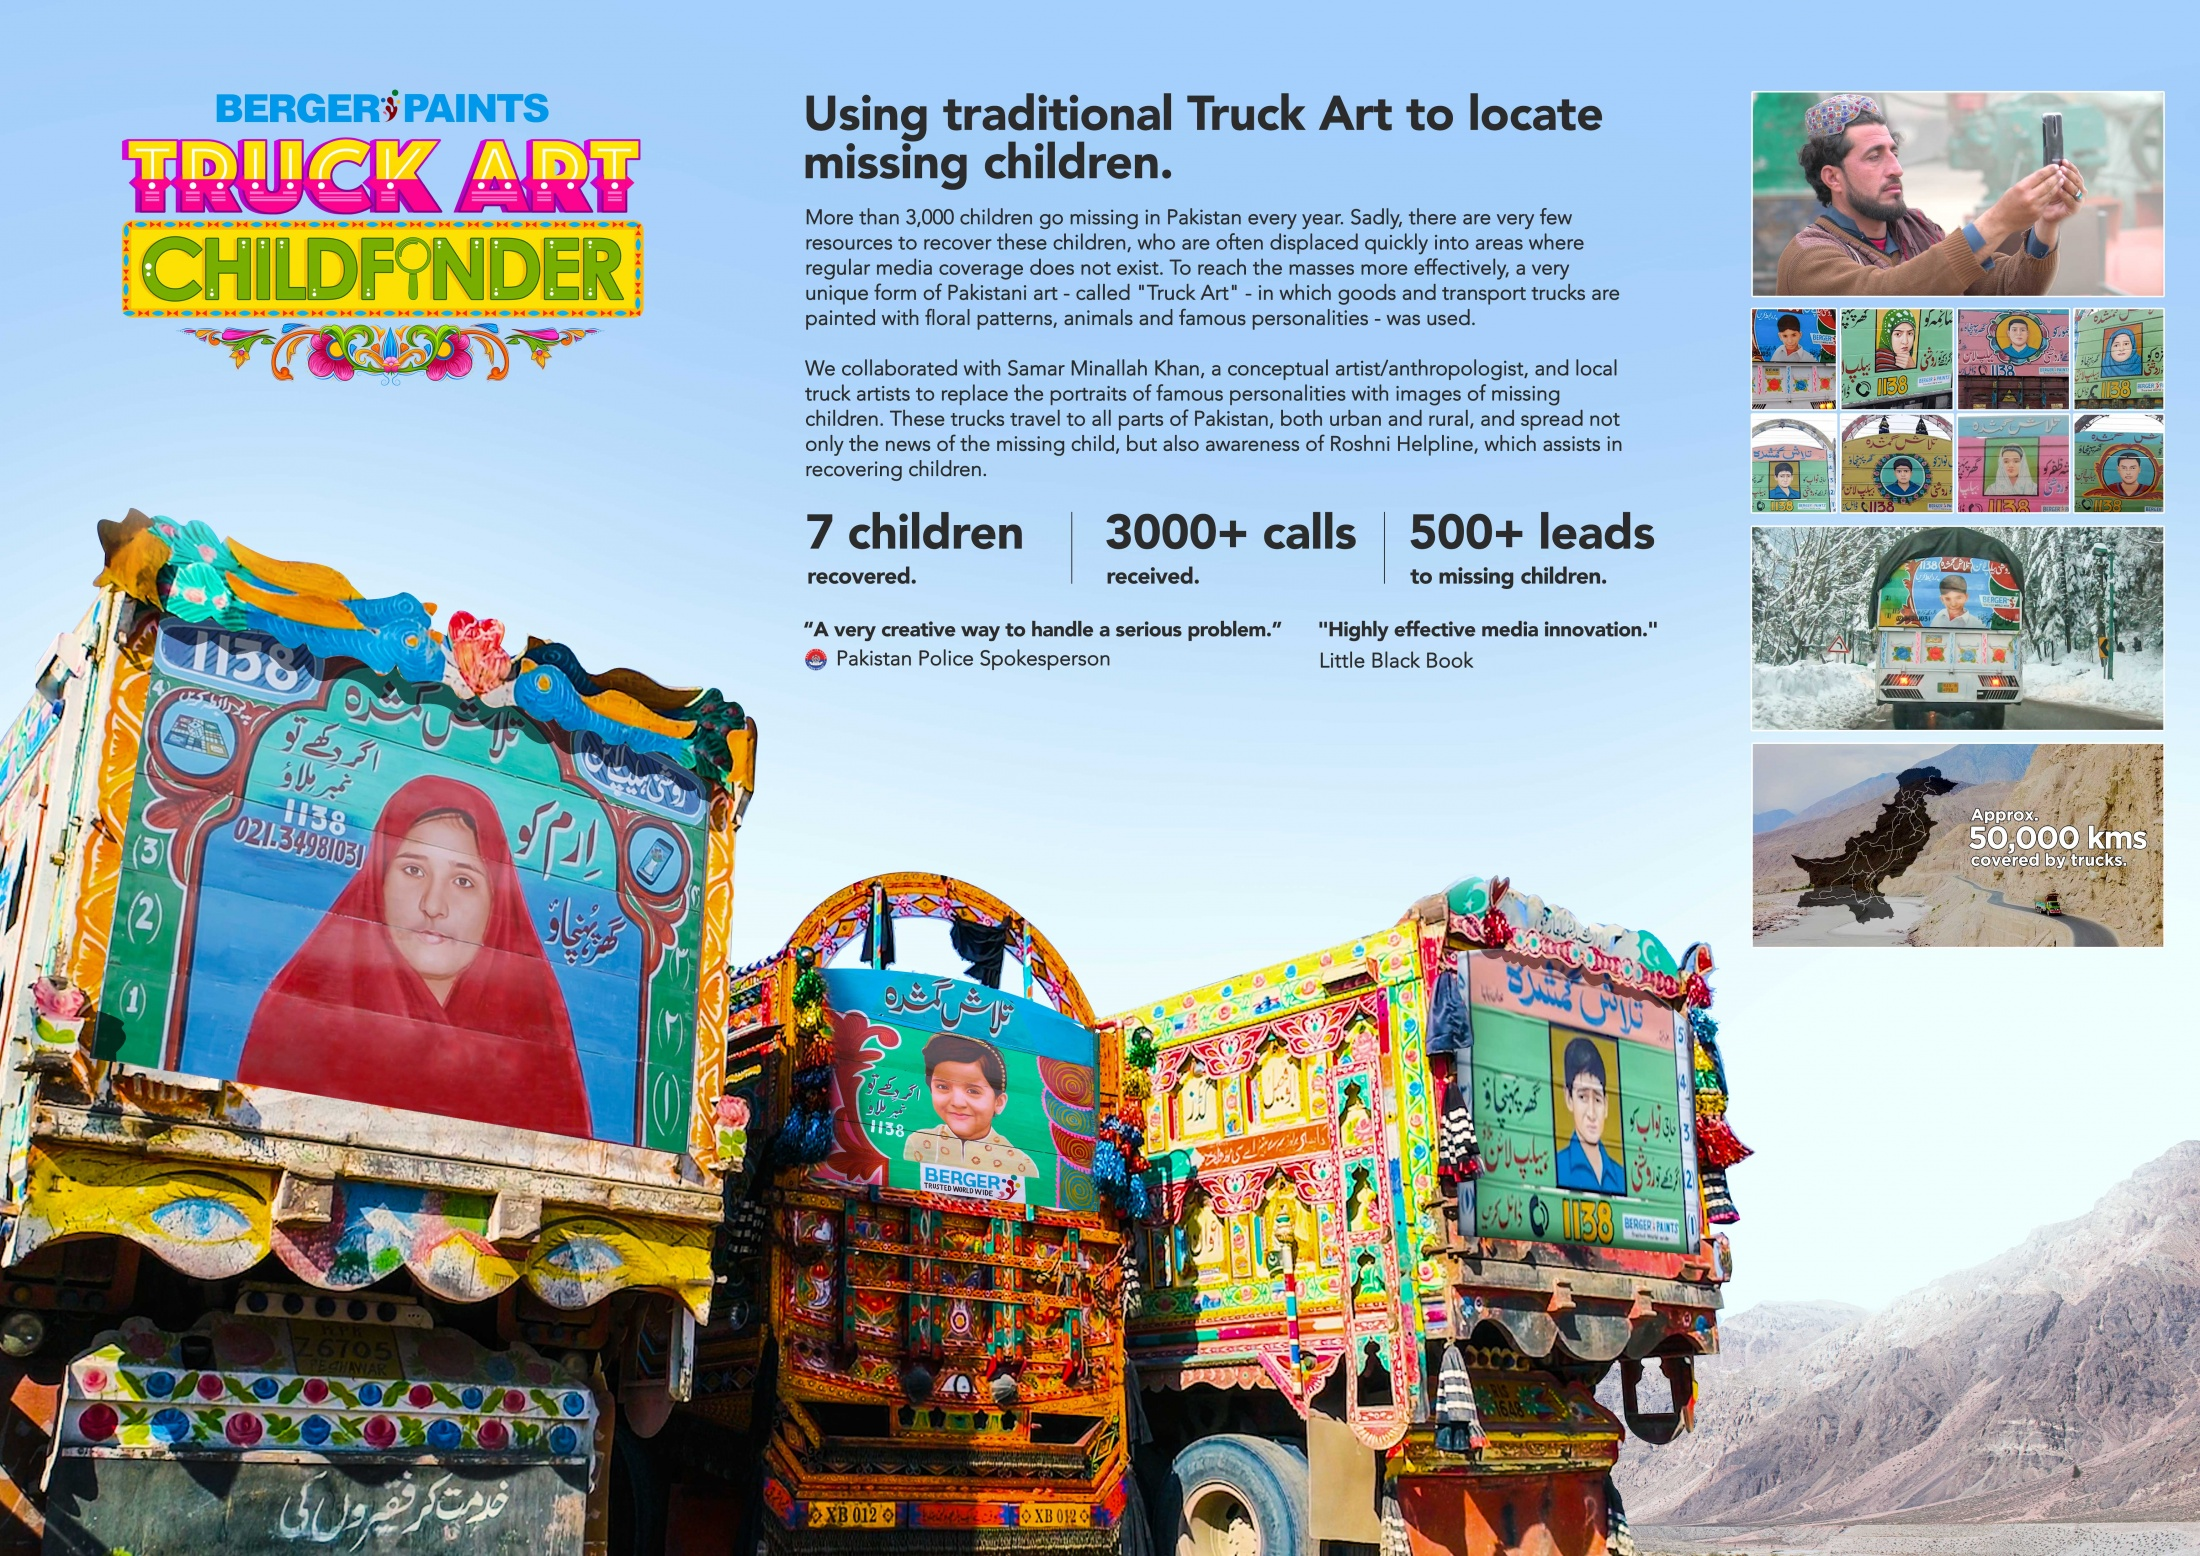 Thumbnail for Truck Art Childfinder